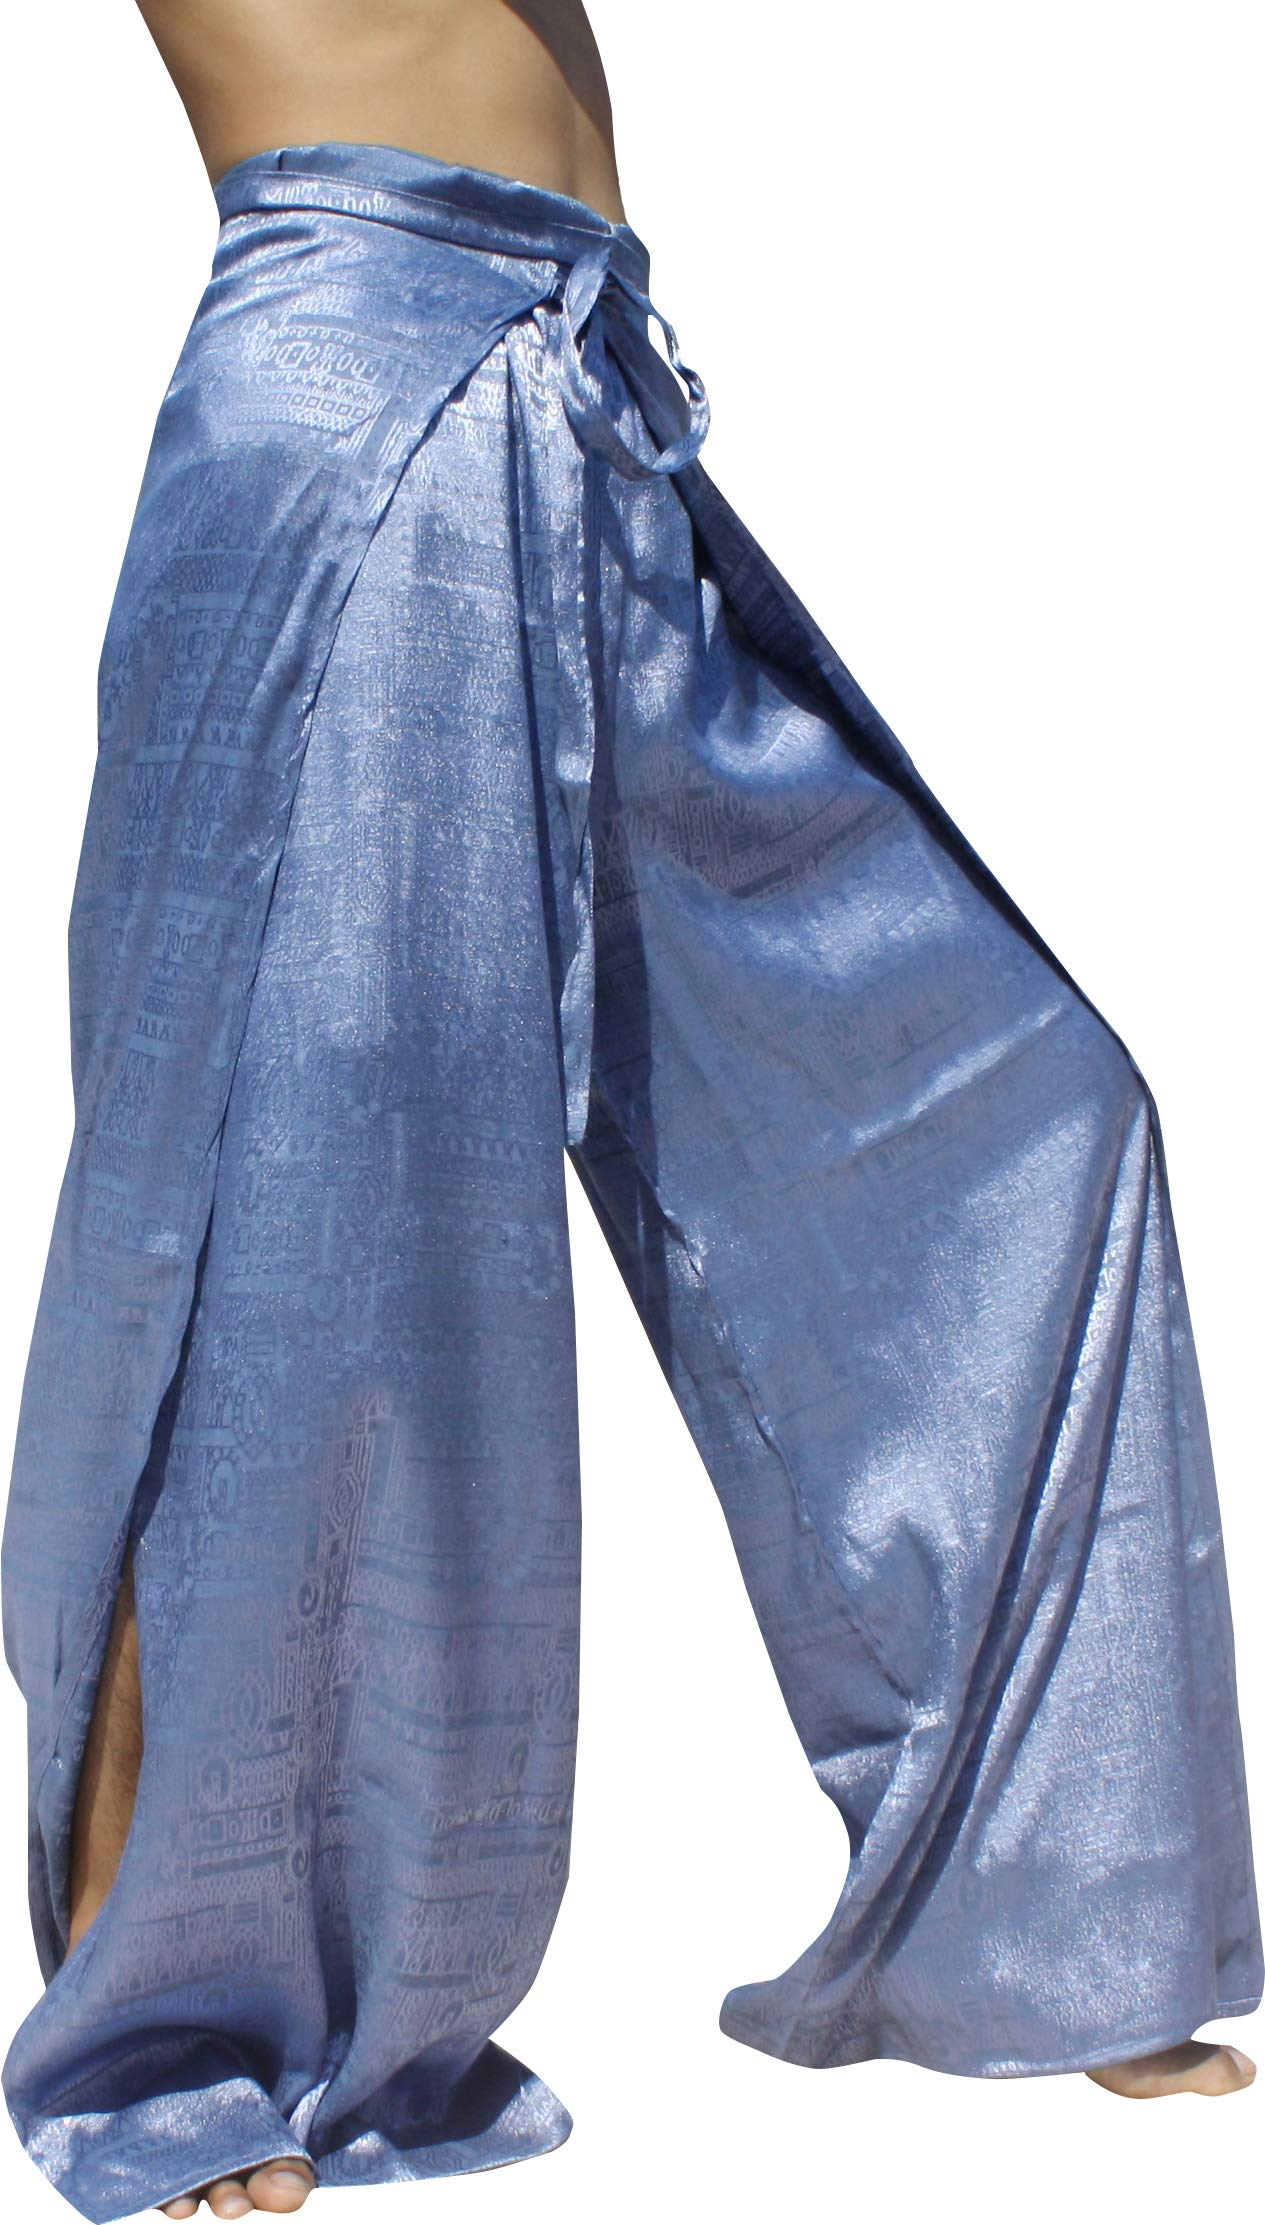 RaanPahMuang Brand Geometric Thick Textured Silk Drive In Wrap Pants, Medium, Light Blue by RaanPahMuang